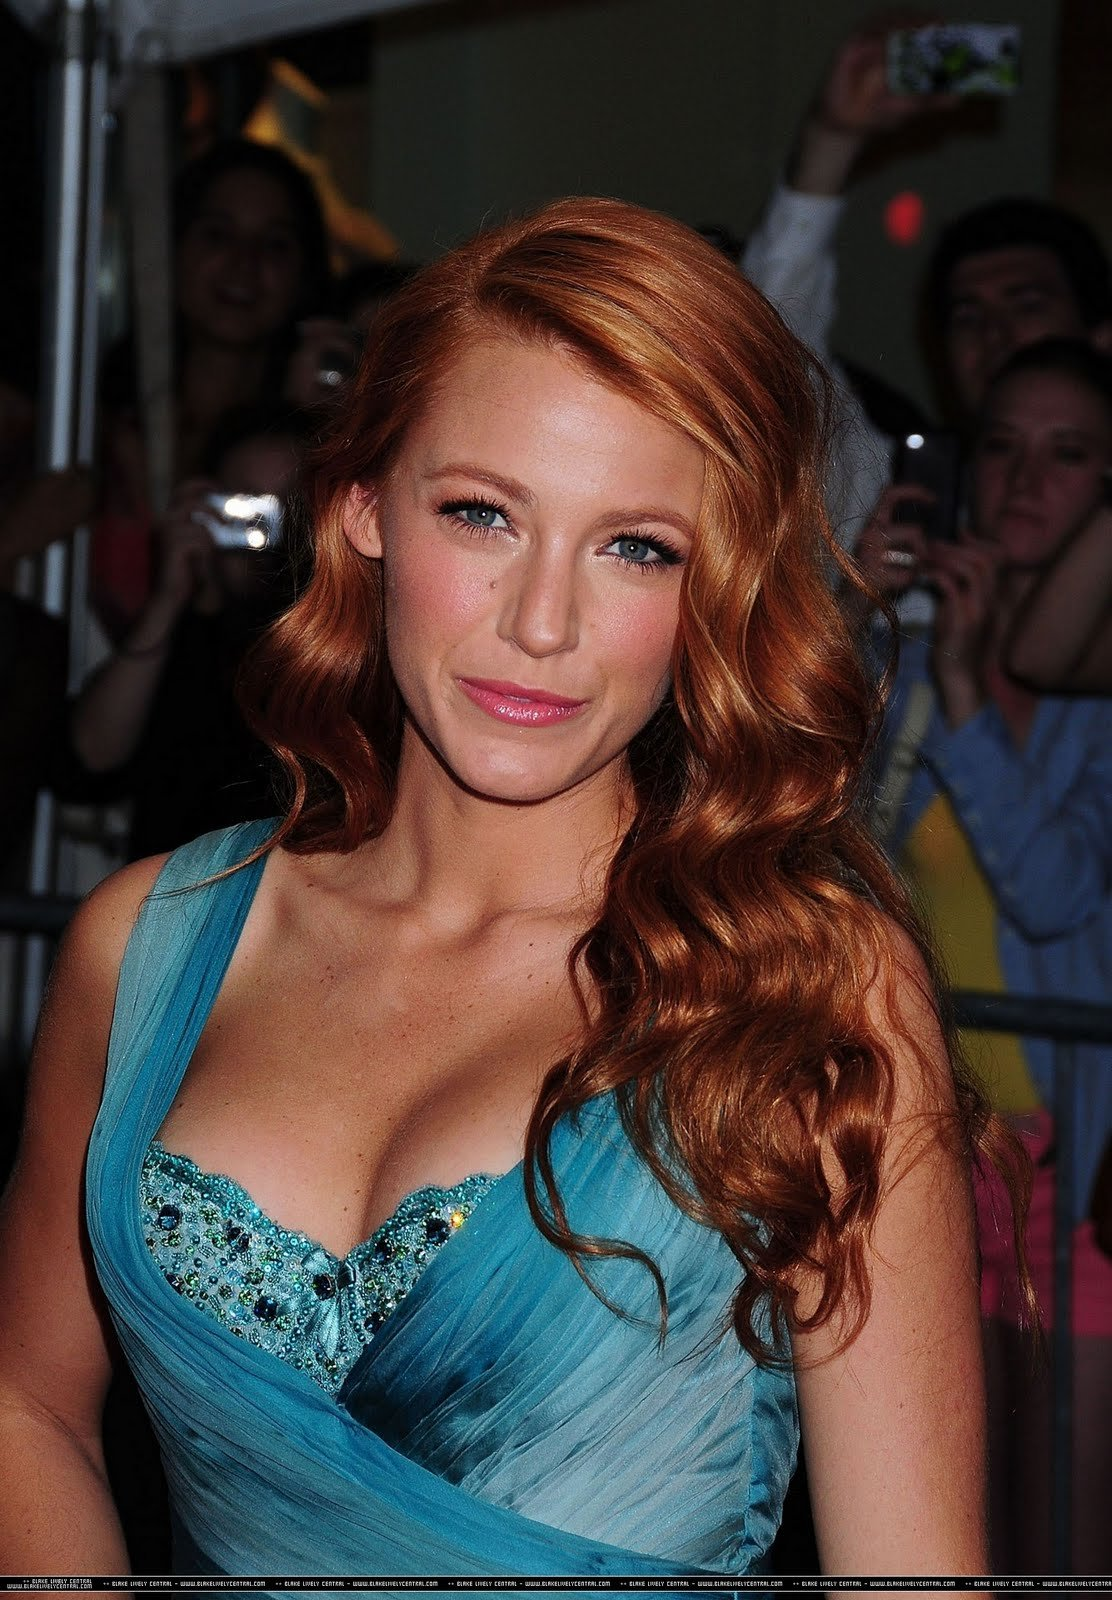 The Best Fashion Beauty Music Celebrities Me Blake Lively In Pictures